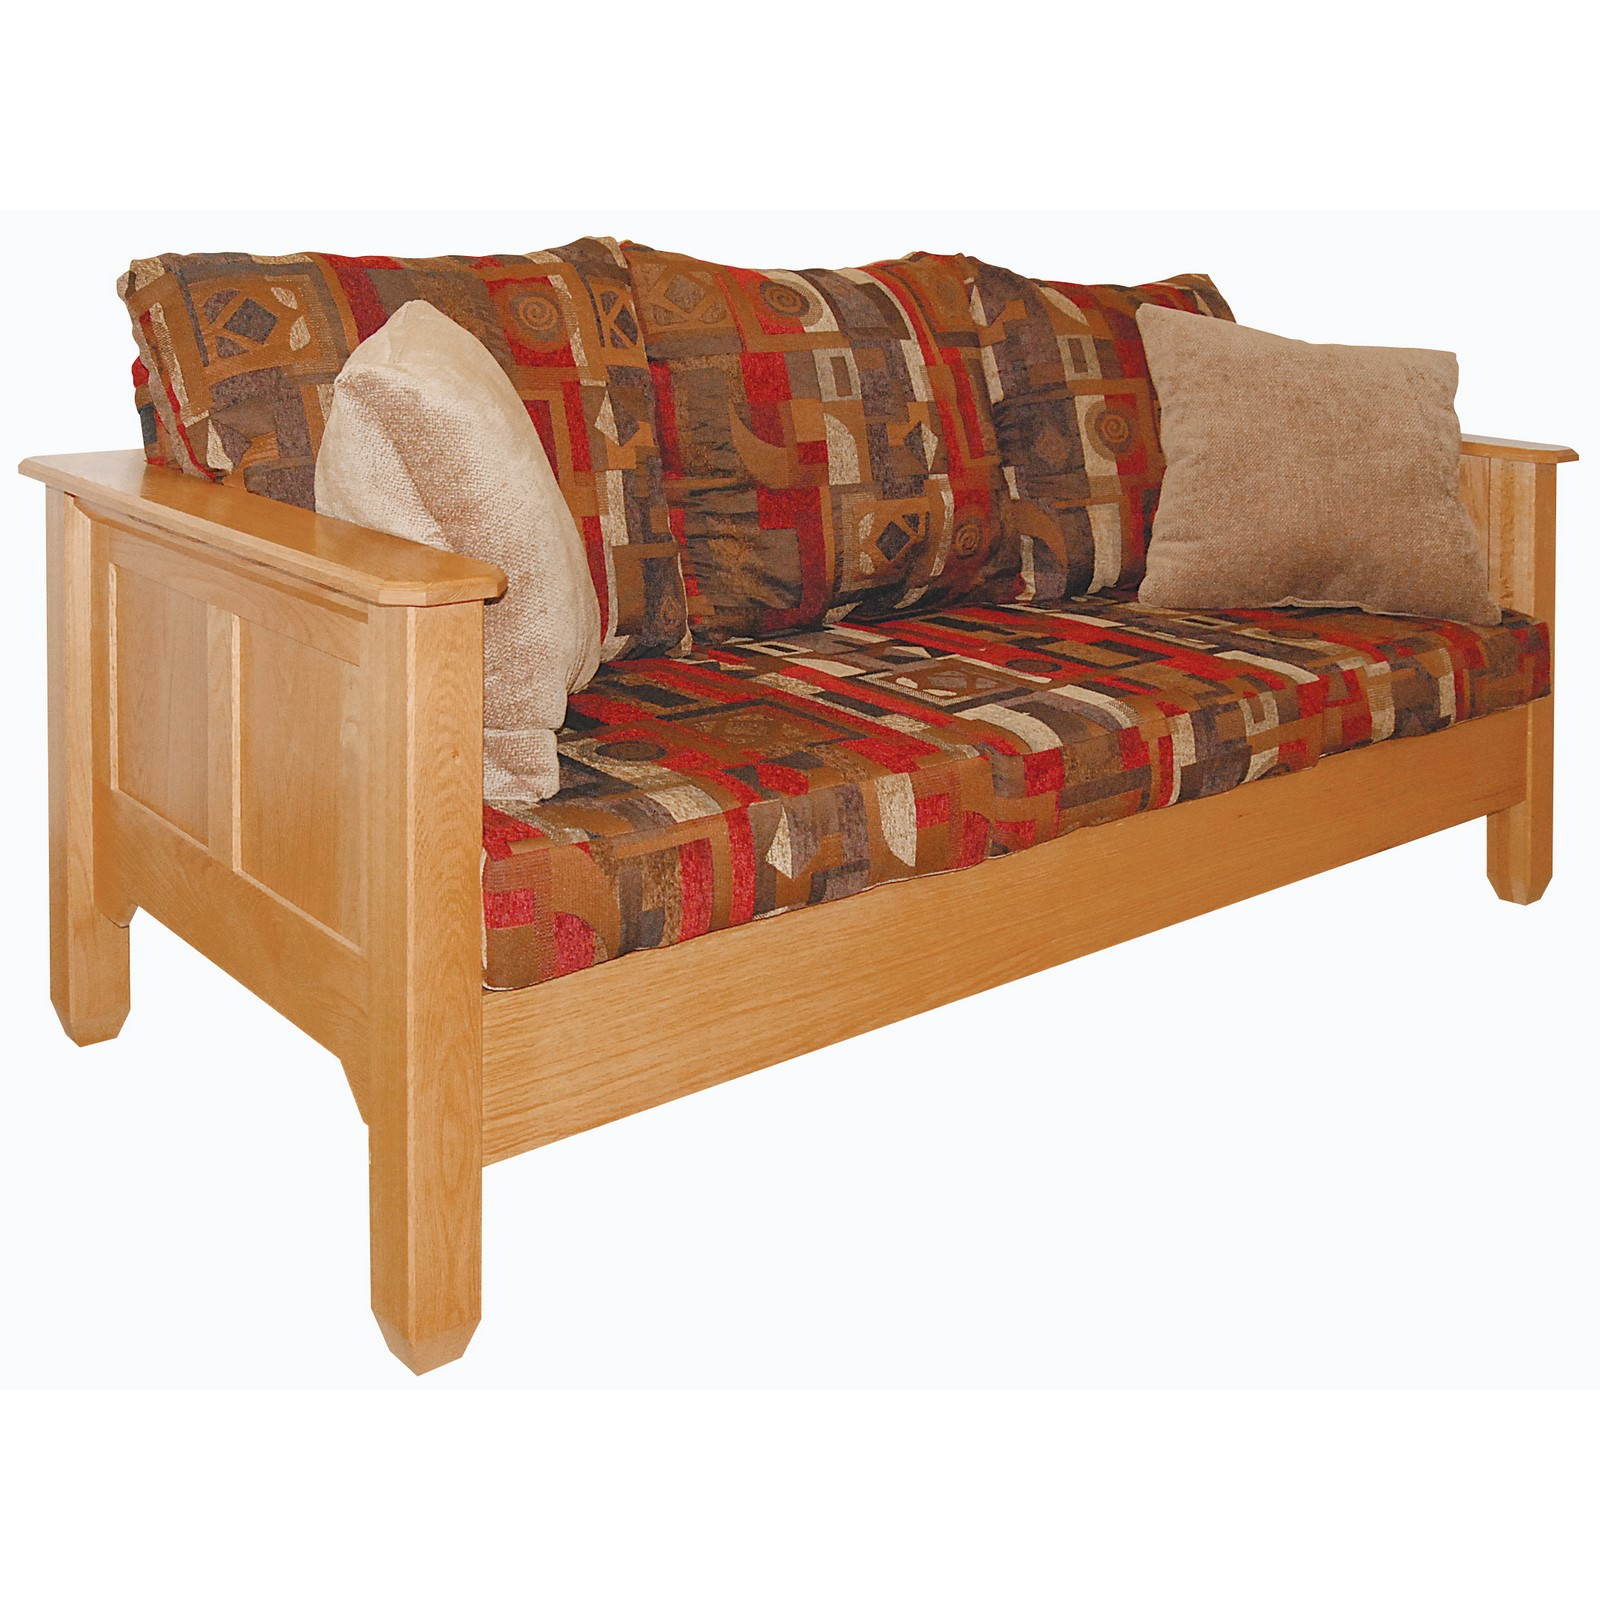 shaker style sofa plans enchanted home pet dreamcatcher dog bed y and t 6600 stewart roth furniture